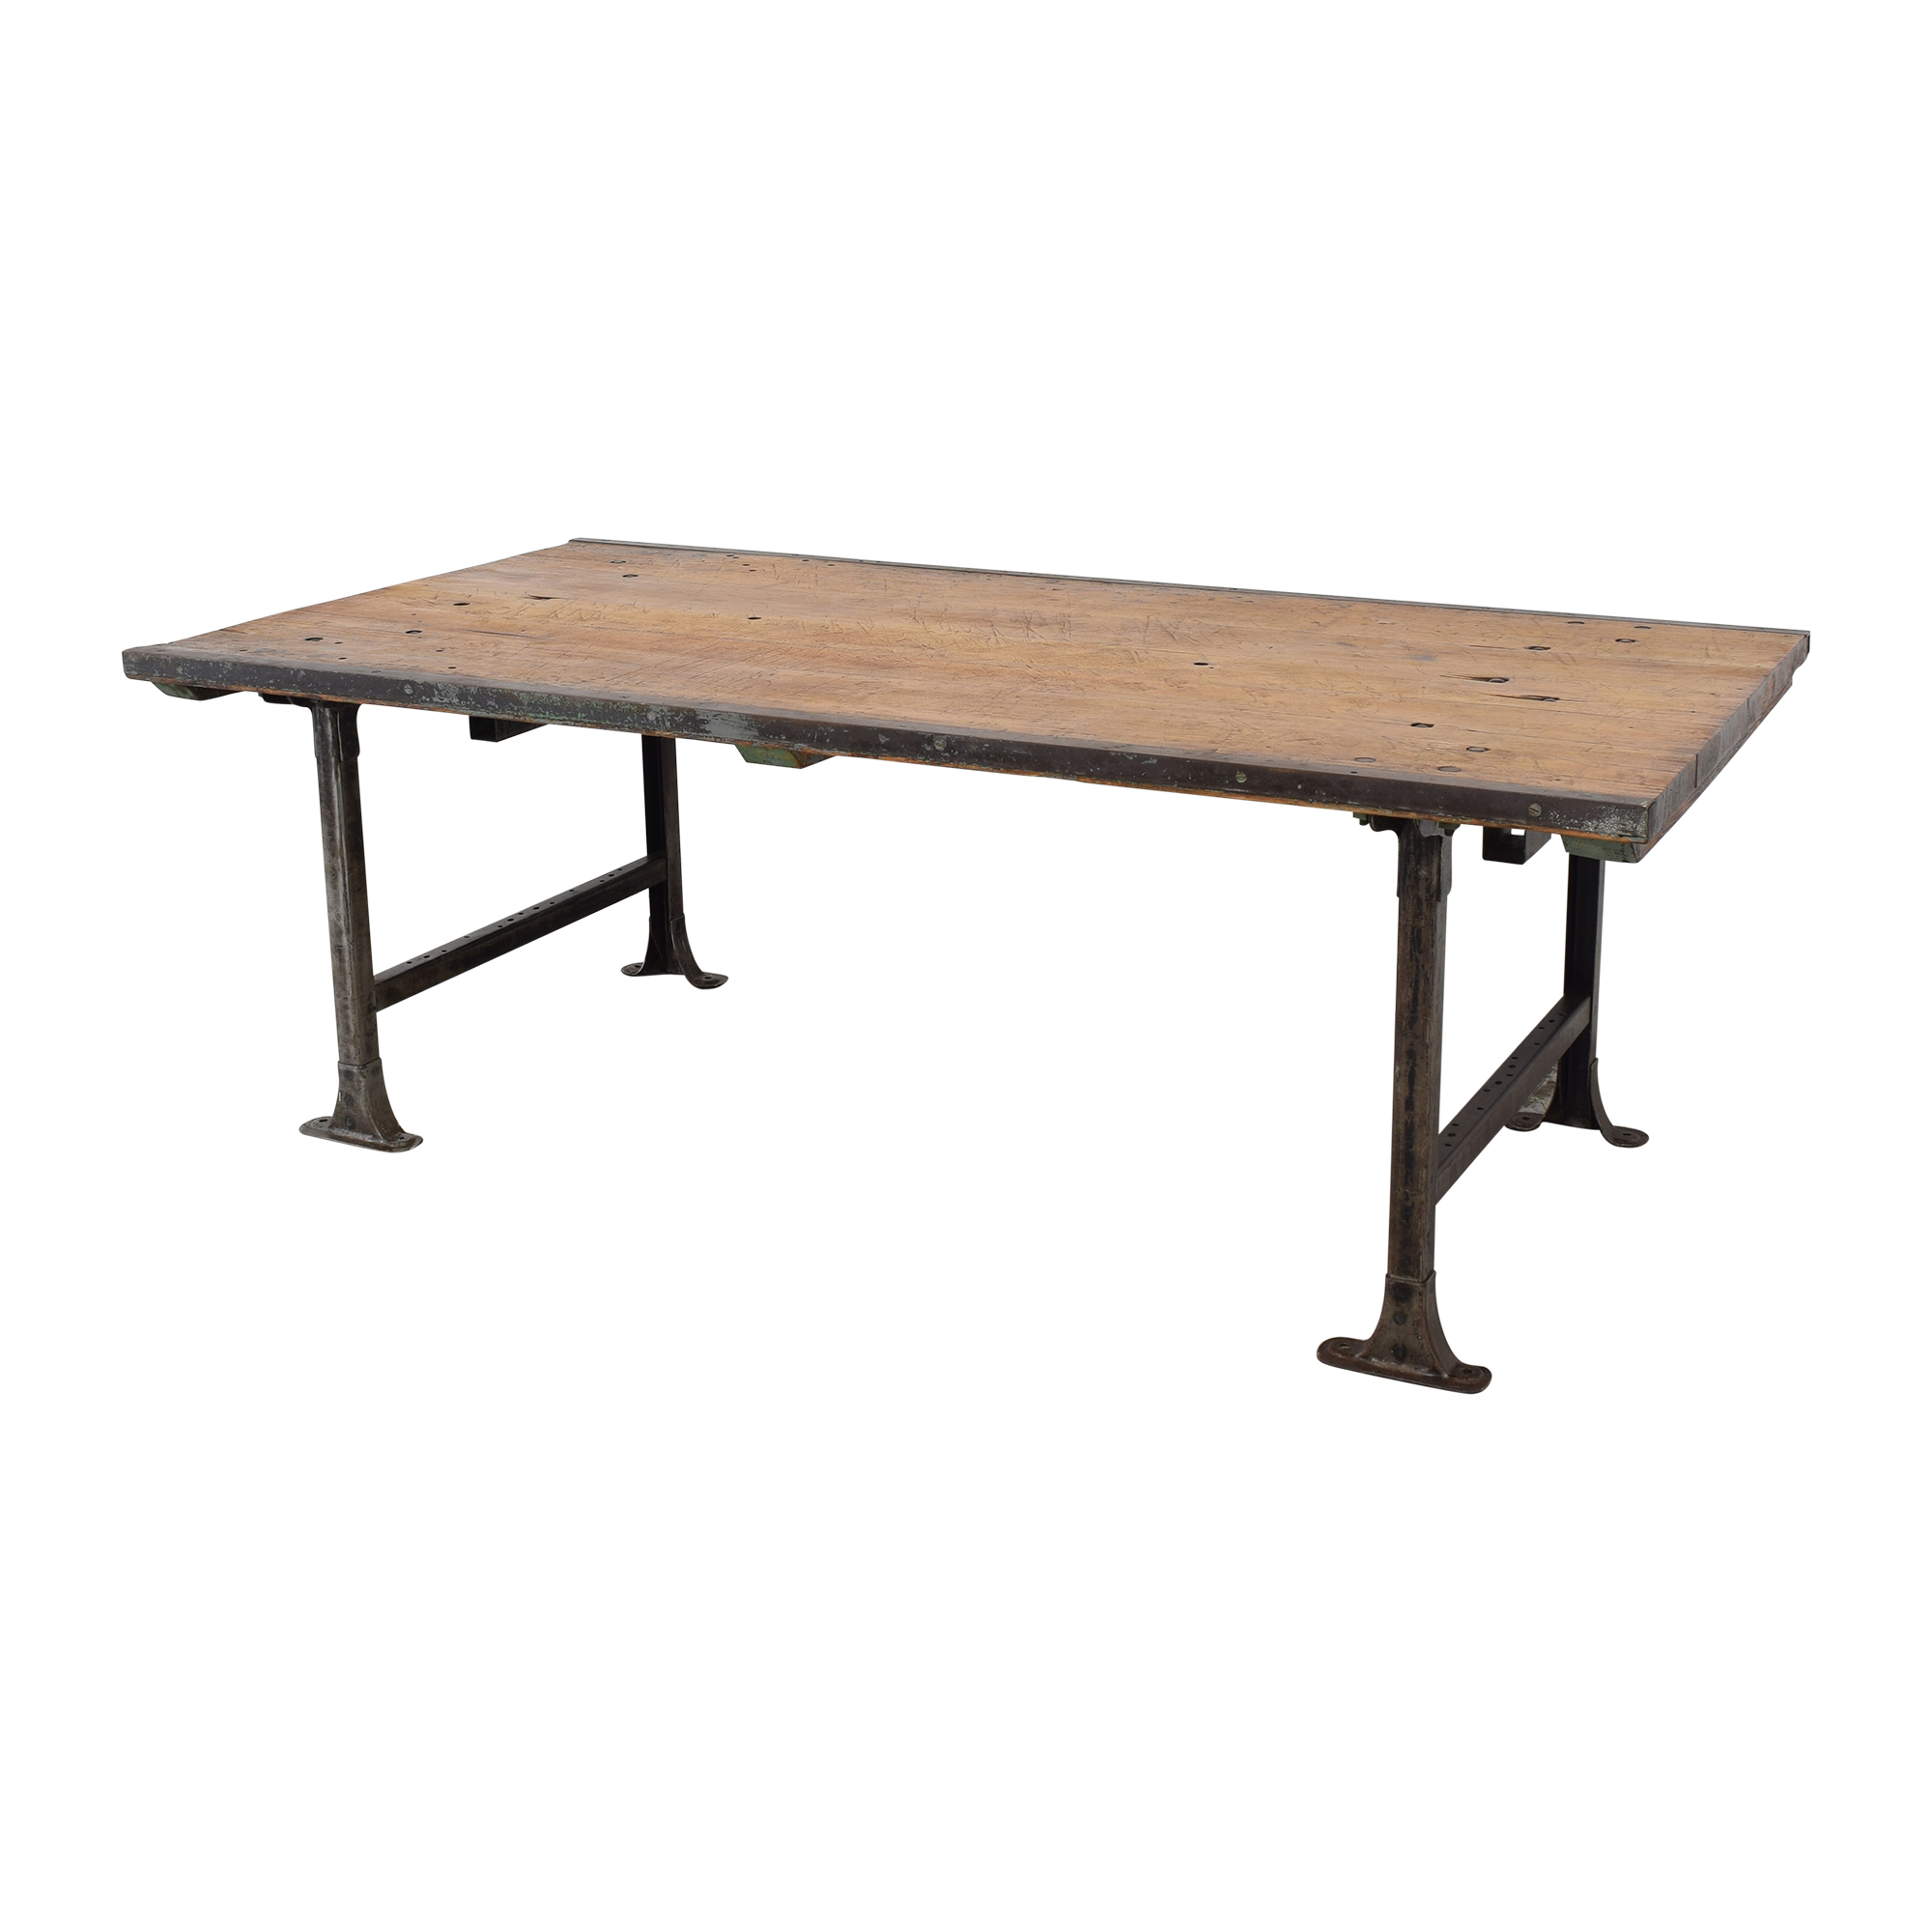 ABC Carpet & Home ABC Carpet & Home Vintage Industrial Dining Table Tables